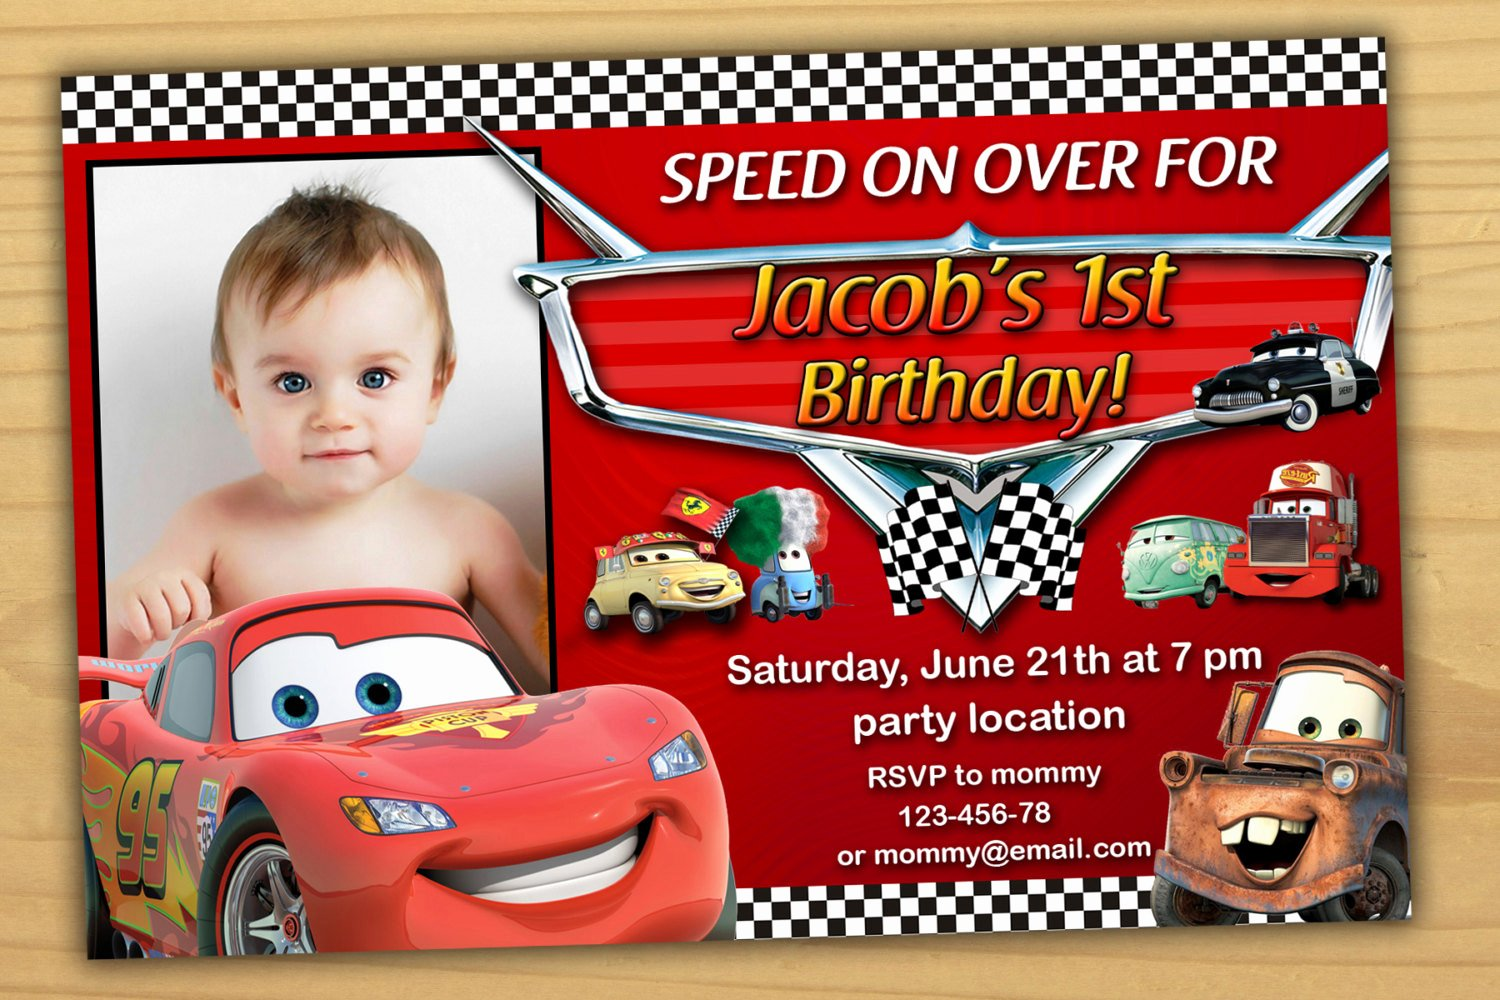 Disney Birthday Invitations Cards Luxury Disney Cars Birthday Invitation Disney Cars Invitation Cars